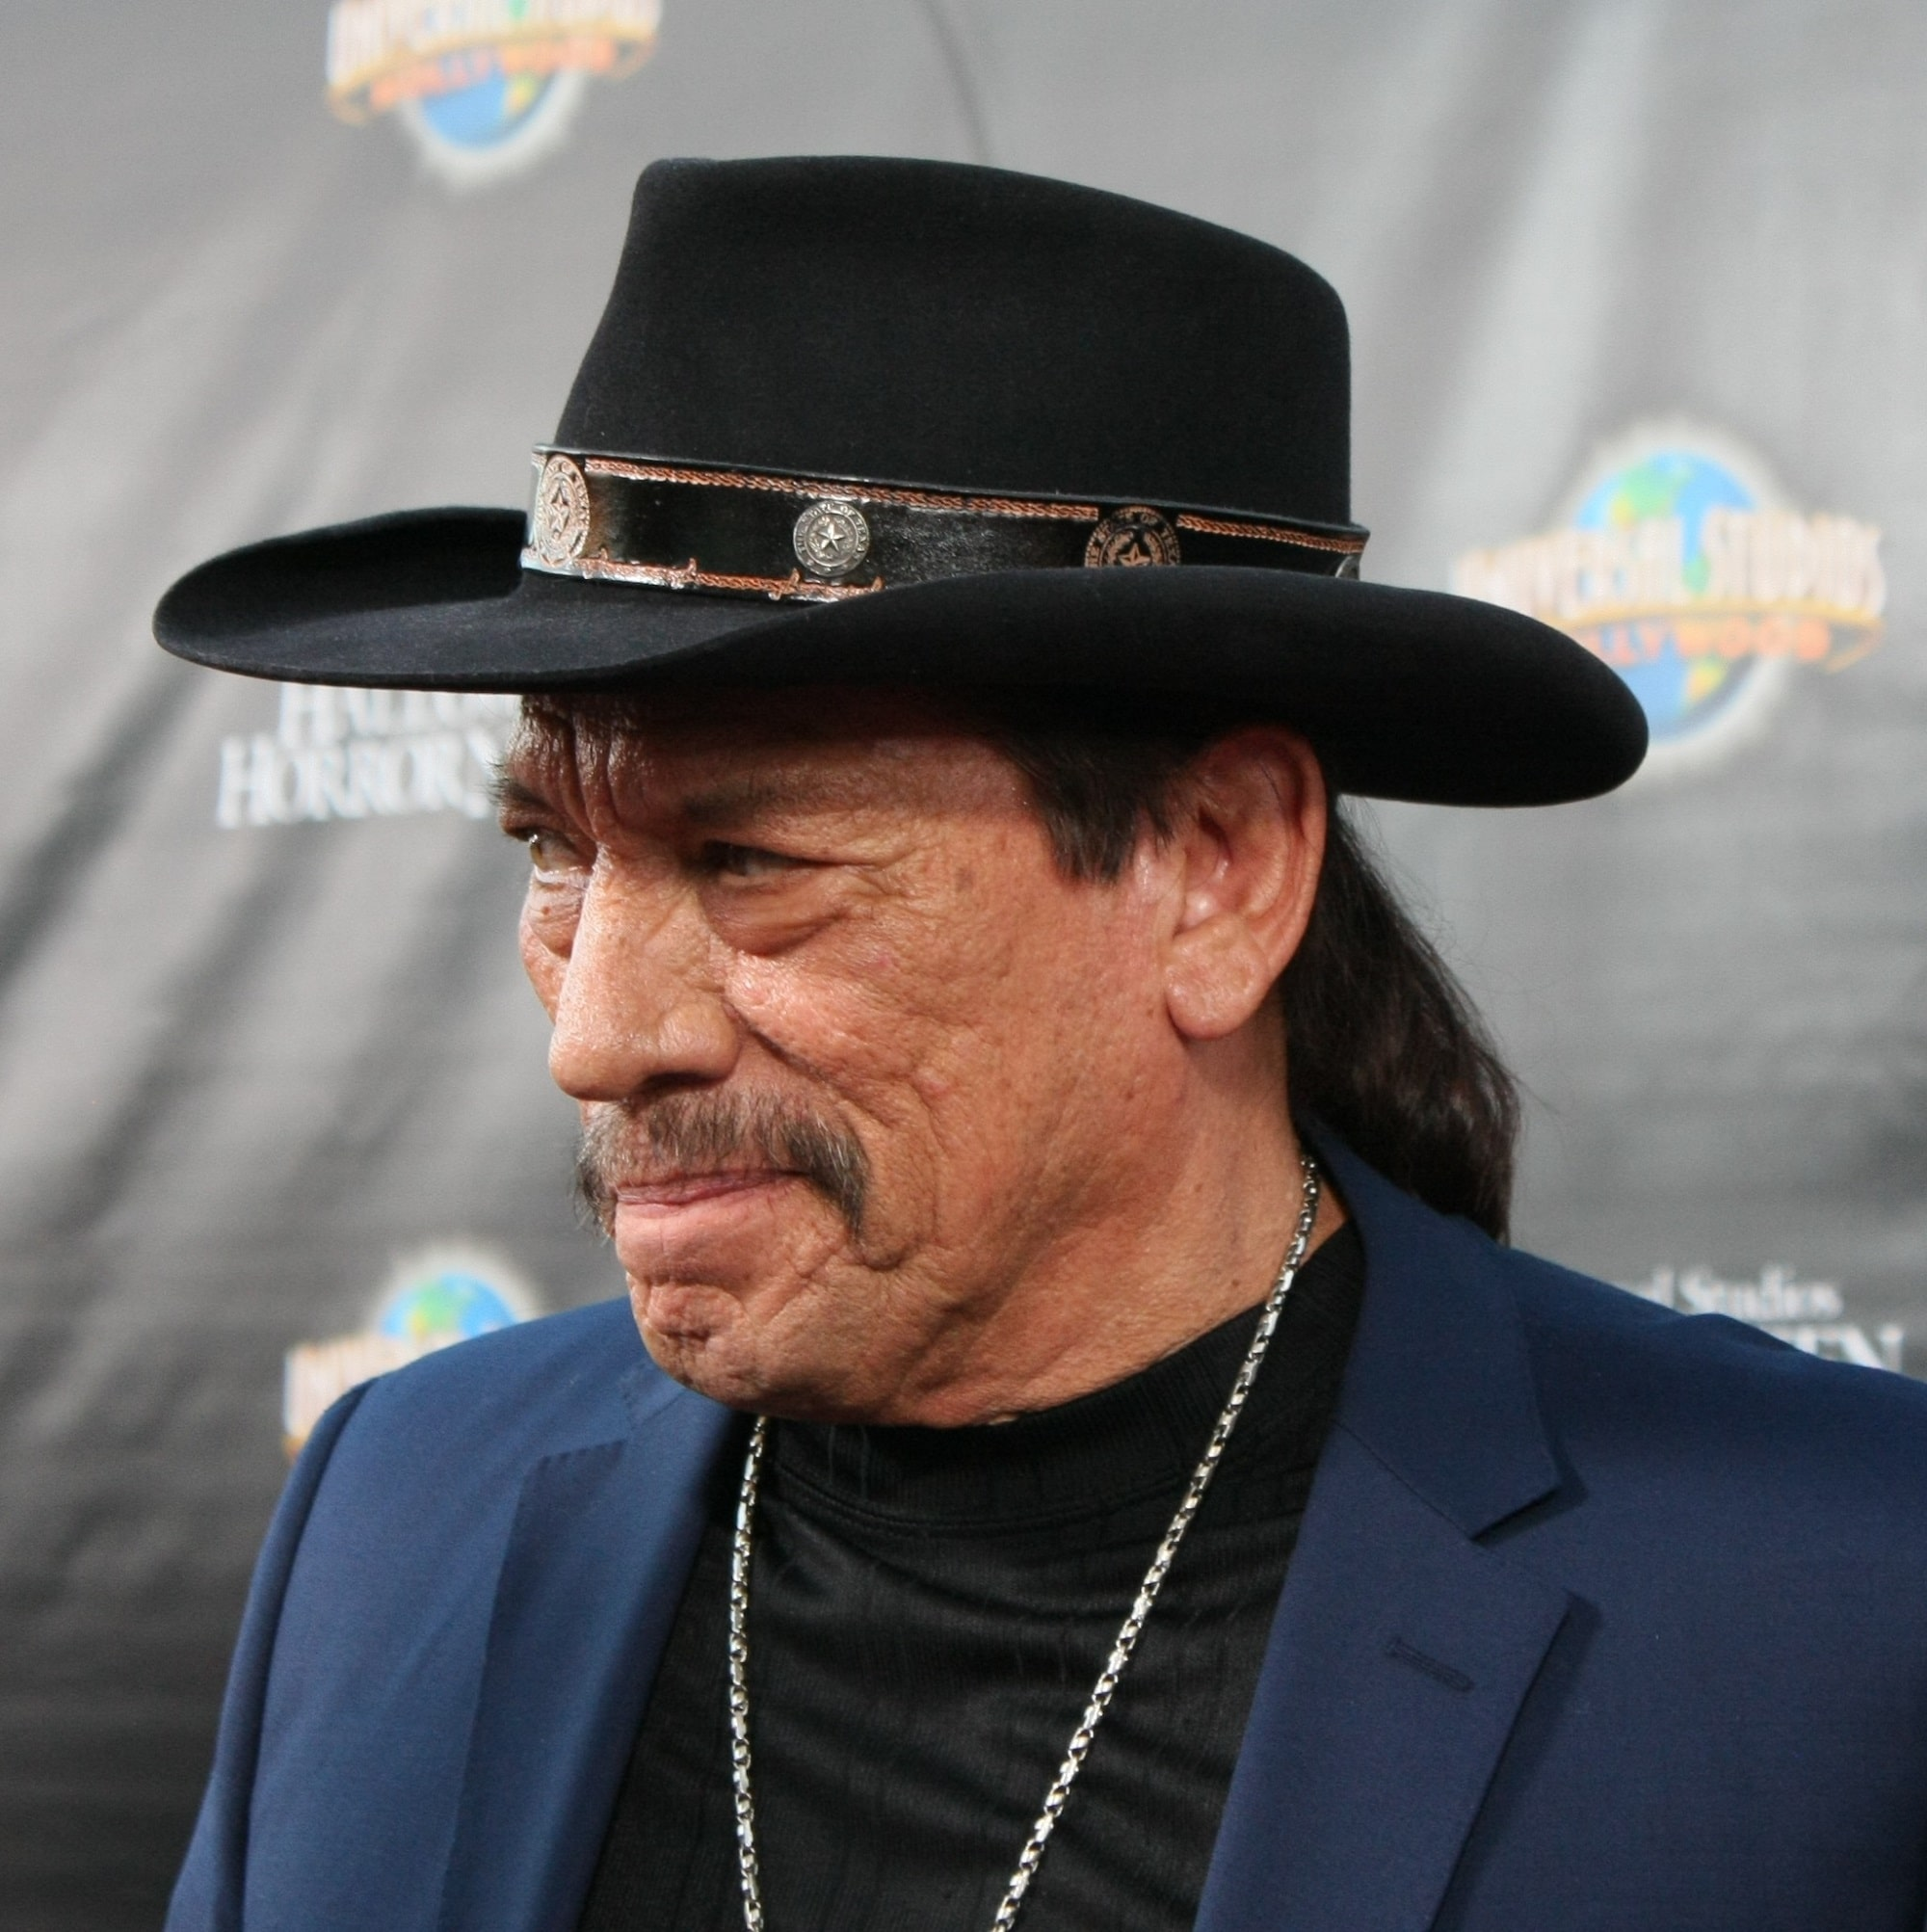 Danny Trejo For mobile